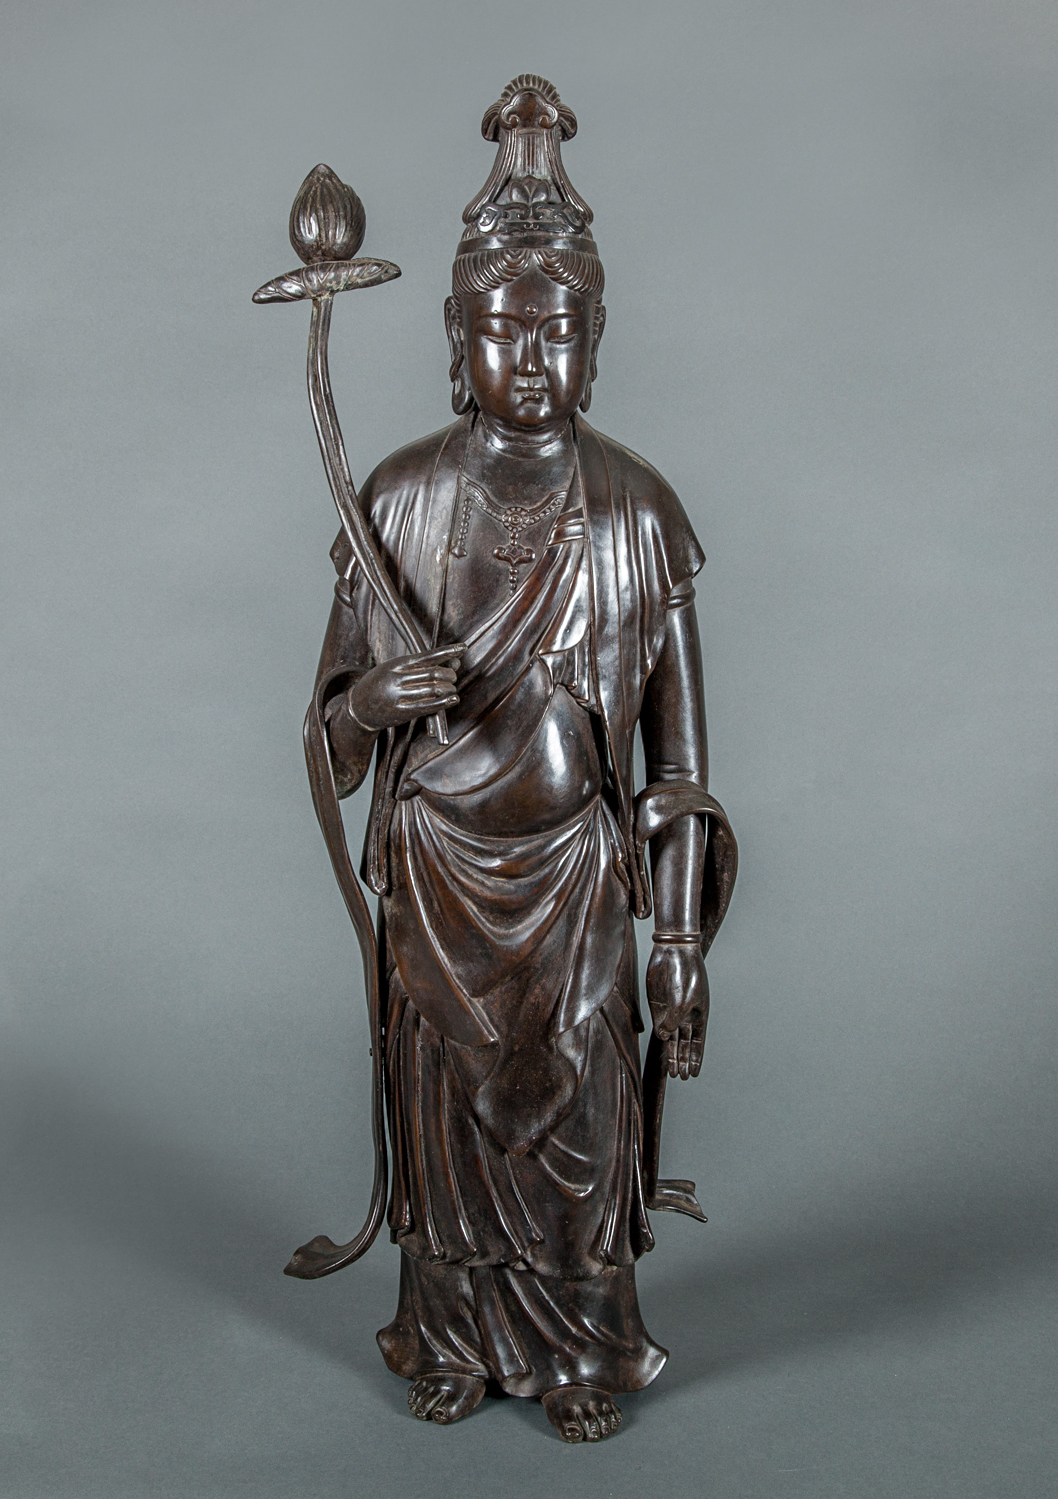 Japanese Antique Bronze Sculpture of a Standing Bosatu